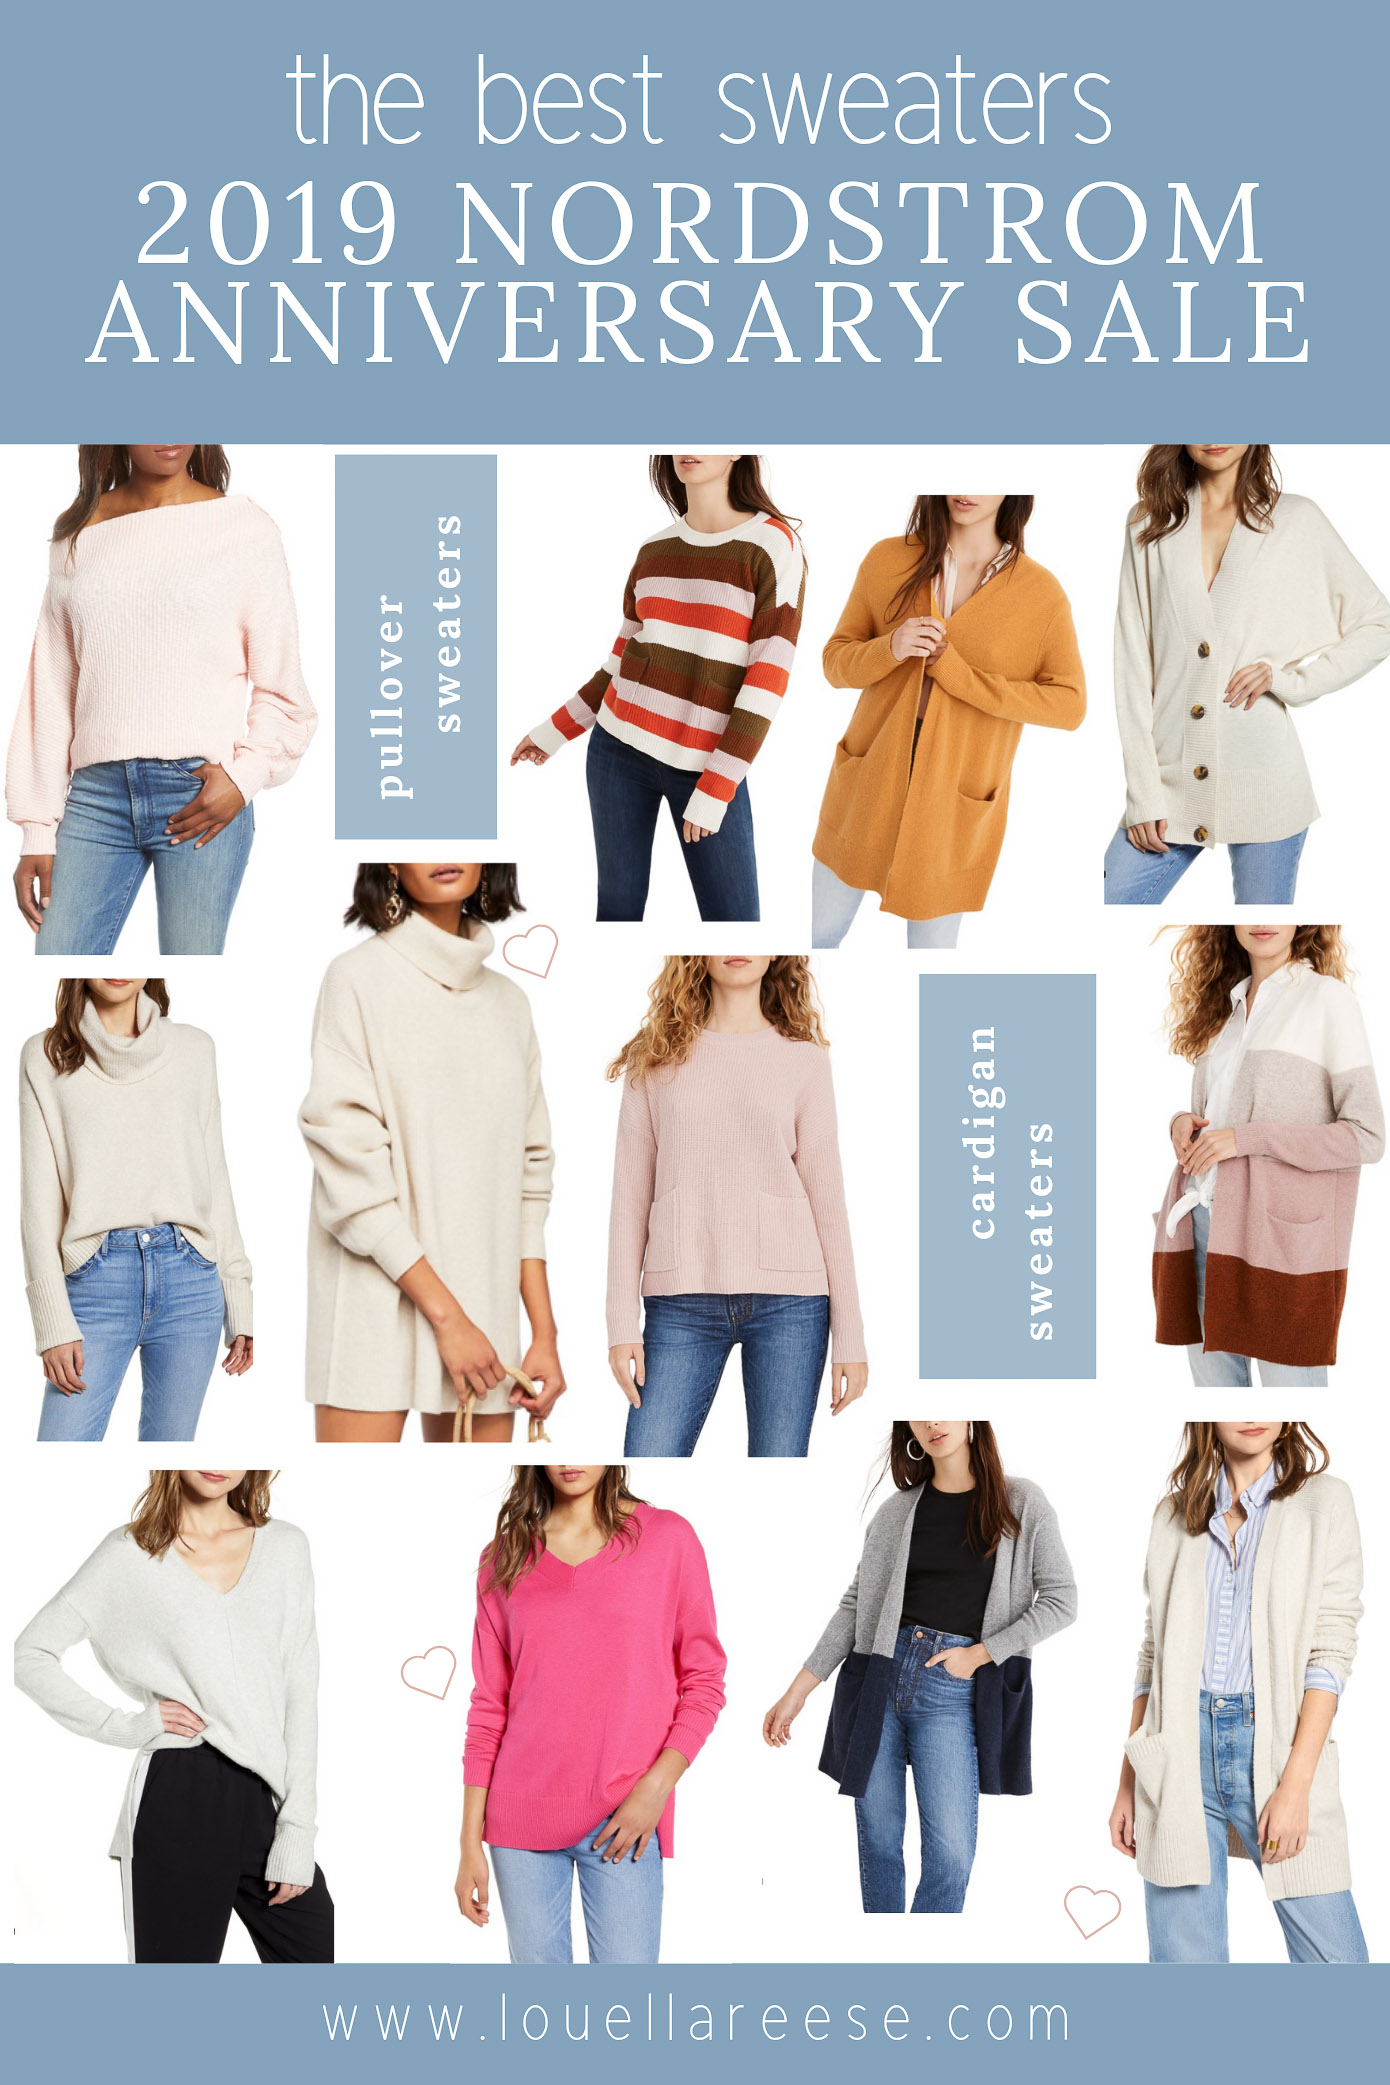 2019 Nordstrom Anniversary Sale Best Sweaters | The BEST Sweaters from the 2019 Nordstrom Anniversary Sale | Louella Reese